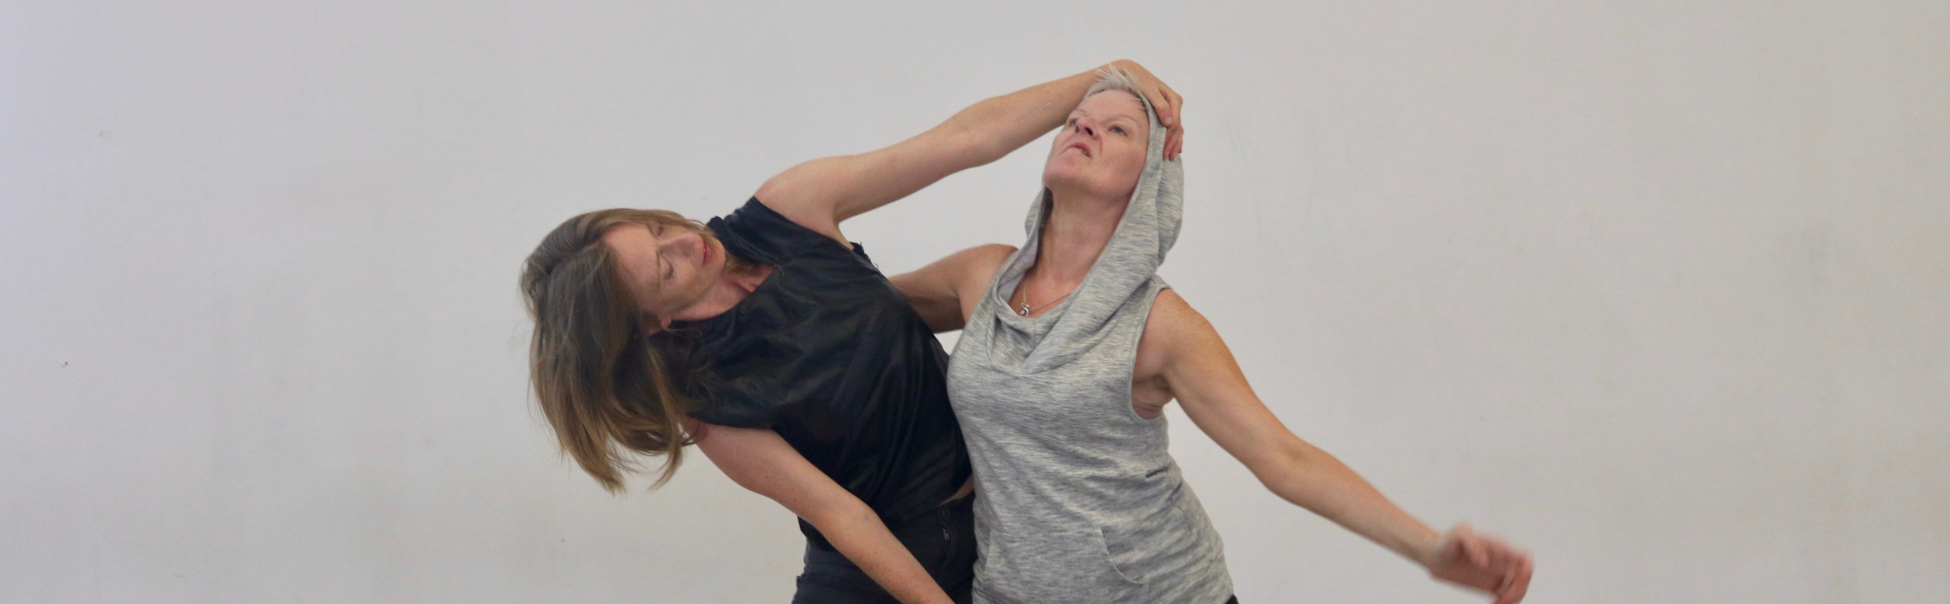 One woman in black and one woman in grey dancing with a grey background